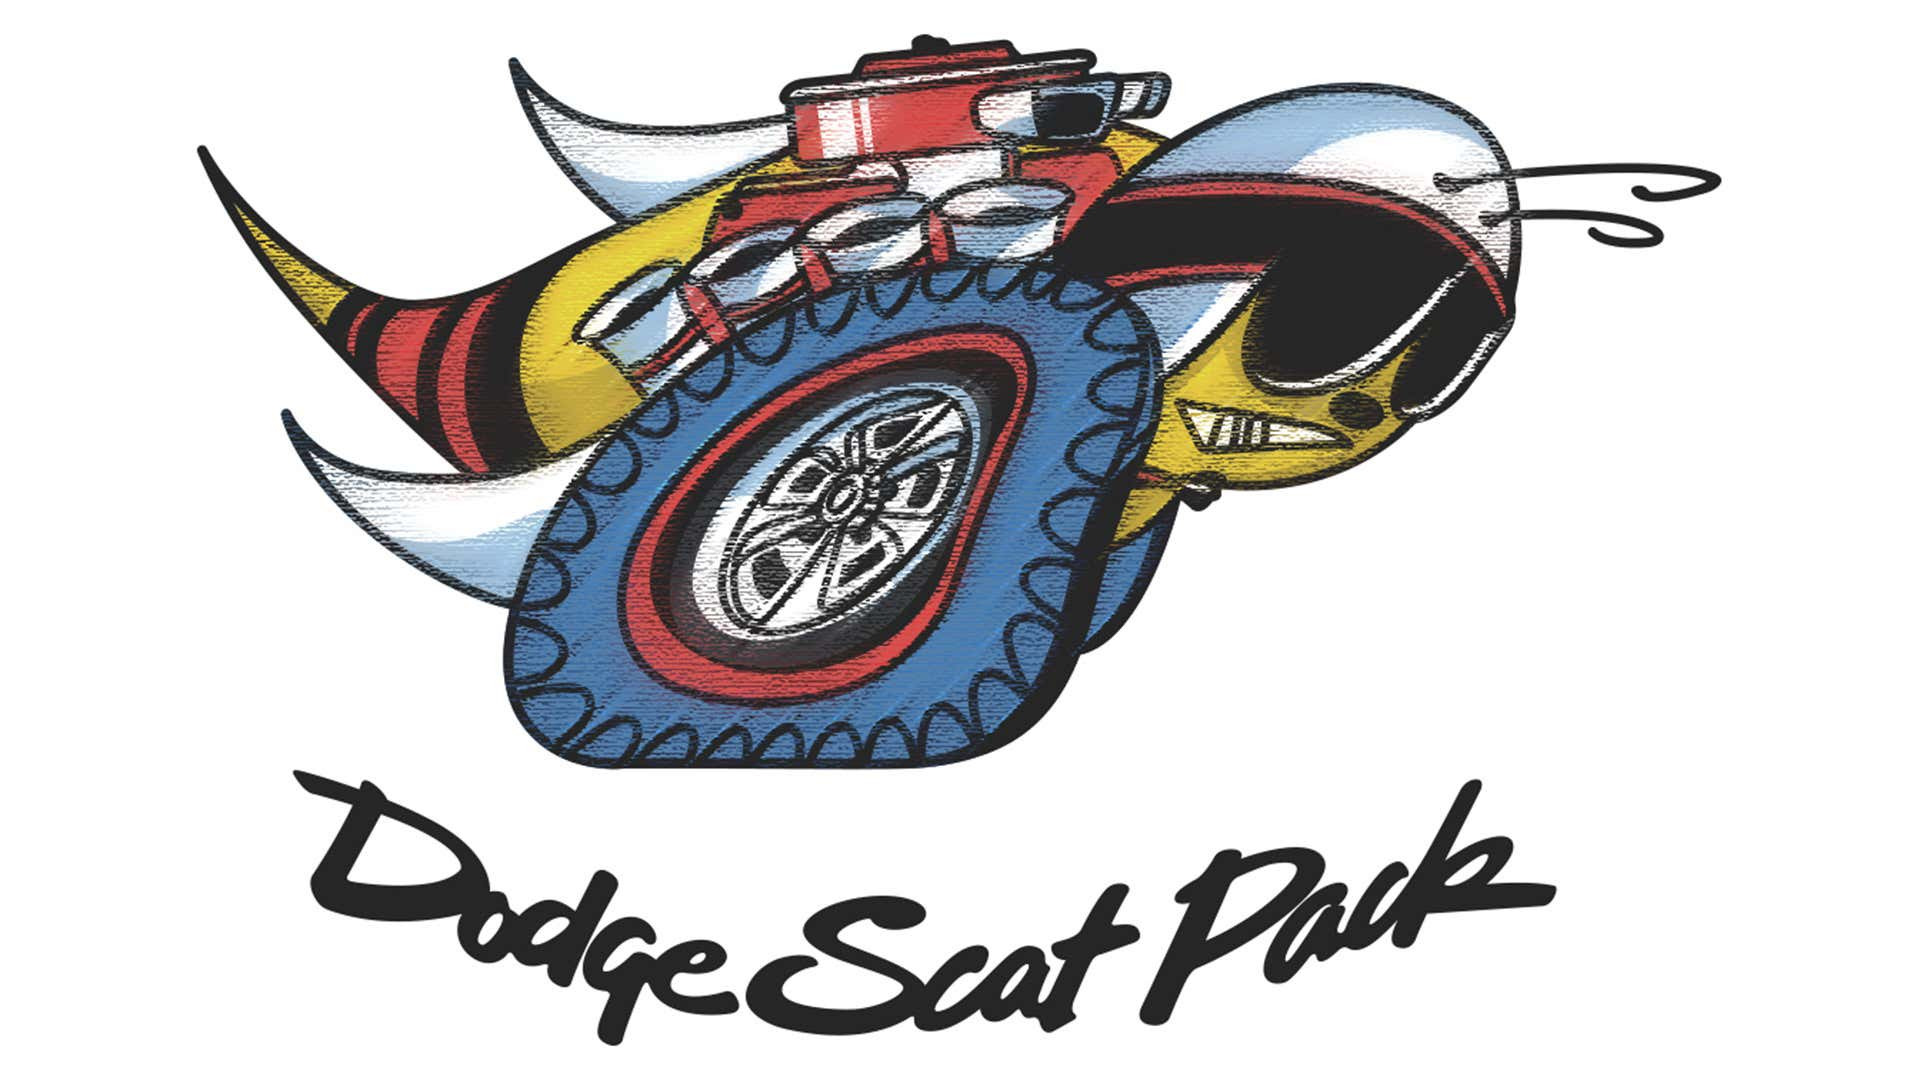 The Dodge Scat Pack bee features tires, engine parts, a helmet, and goggles as part of the design.